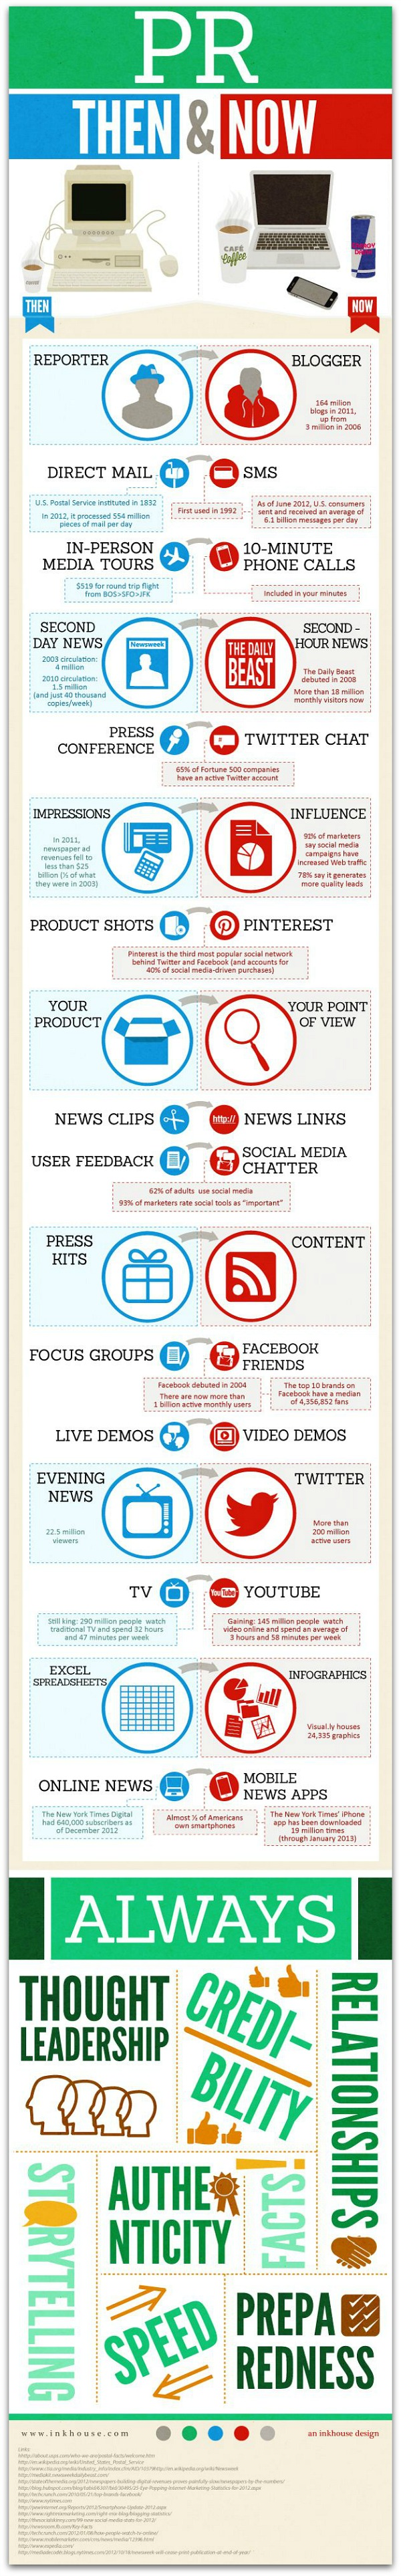 Evolution Of The PR Industry